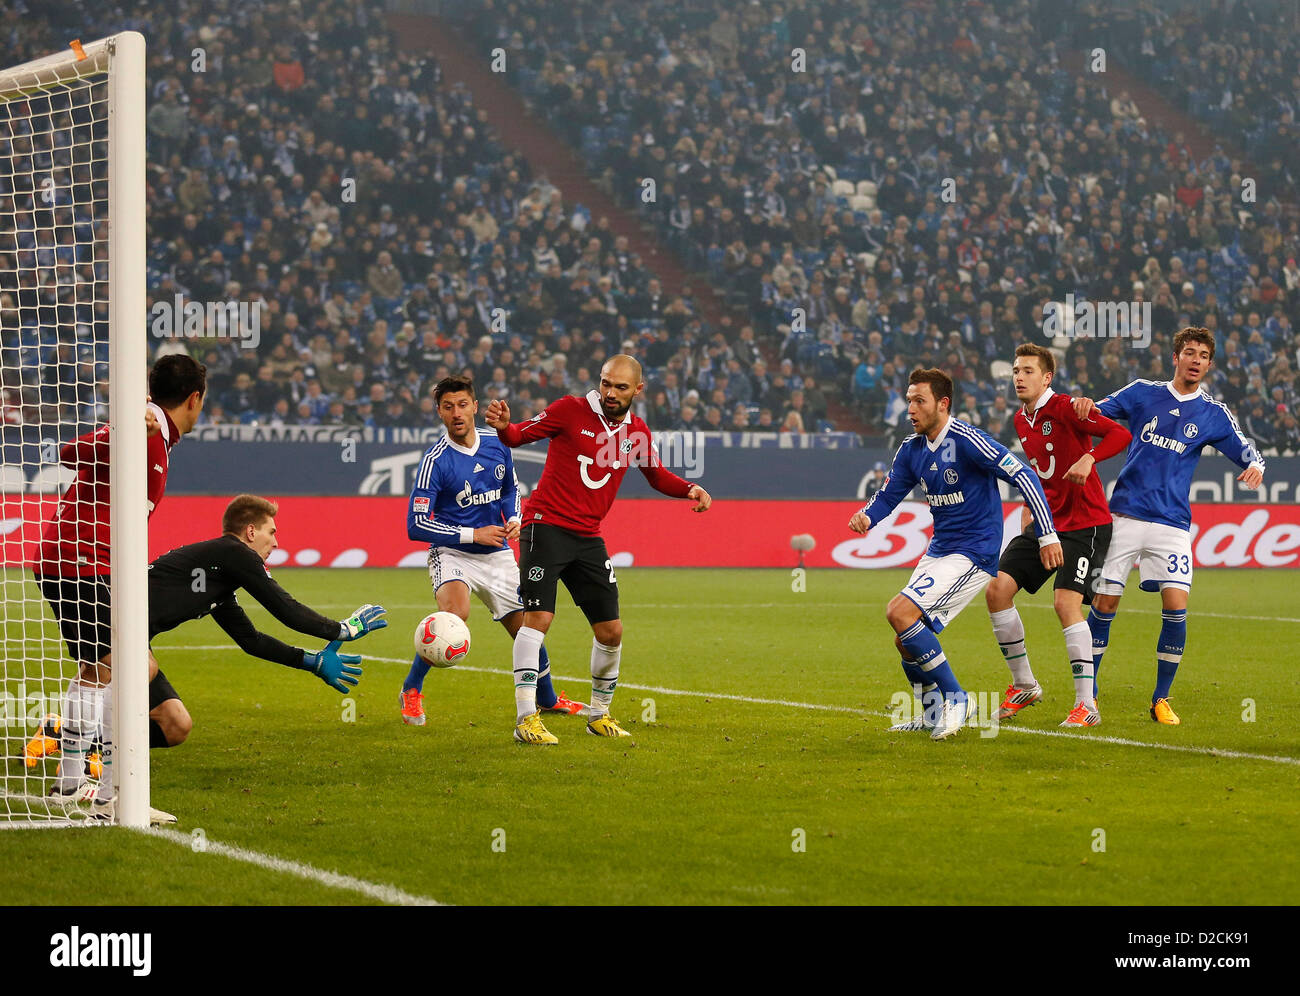 Gelsenkirchen,Germany, FC Schalke 04 -Hannover 96 5-4 , am 18.01.2013,  Torwart Ron-Robert ZIELER (H 96) -2.v.li. - Stock Image